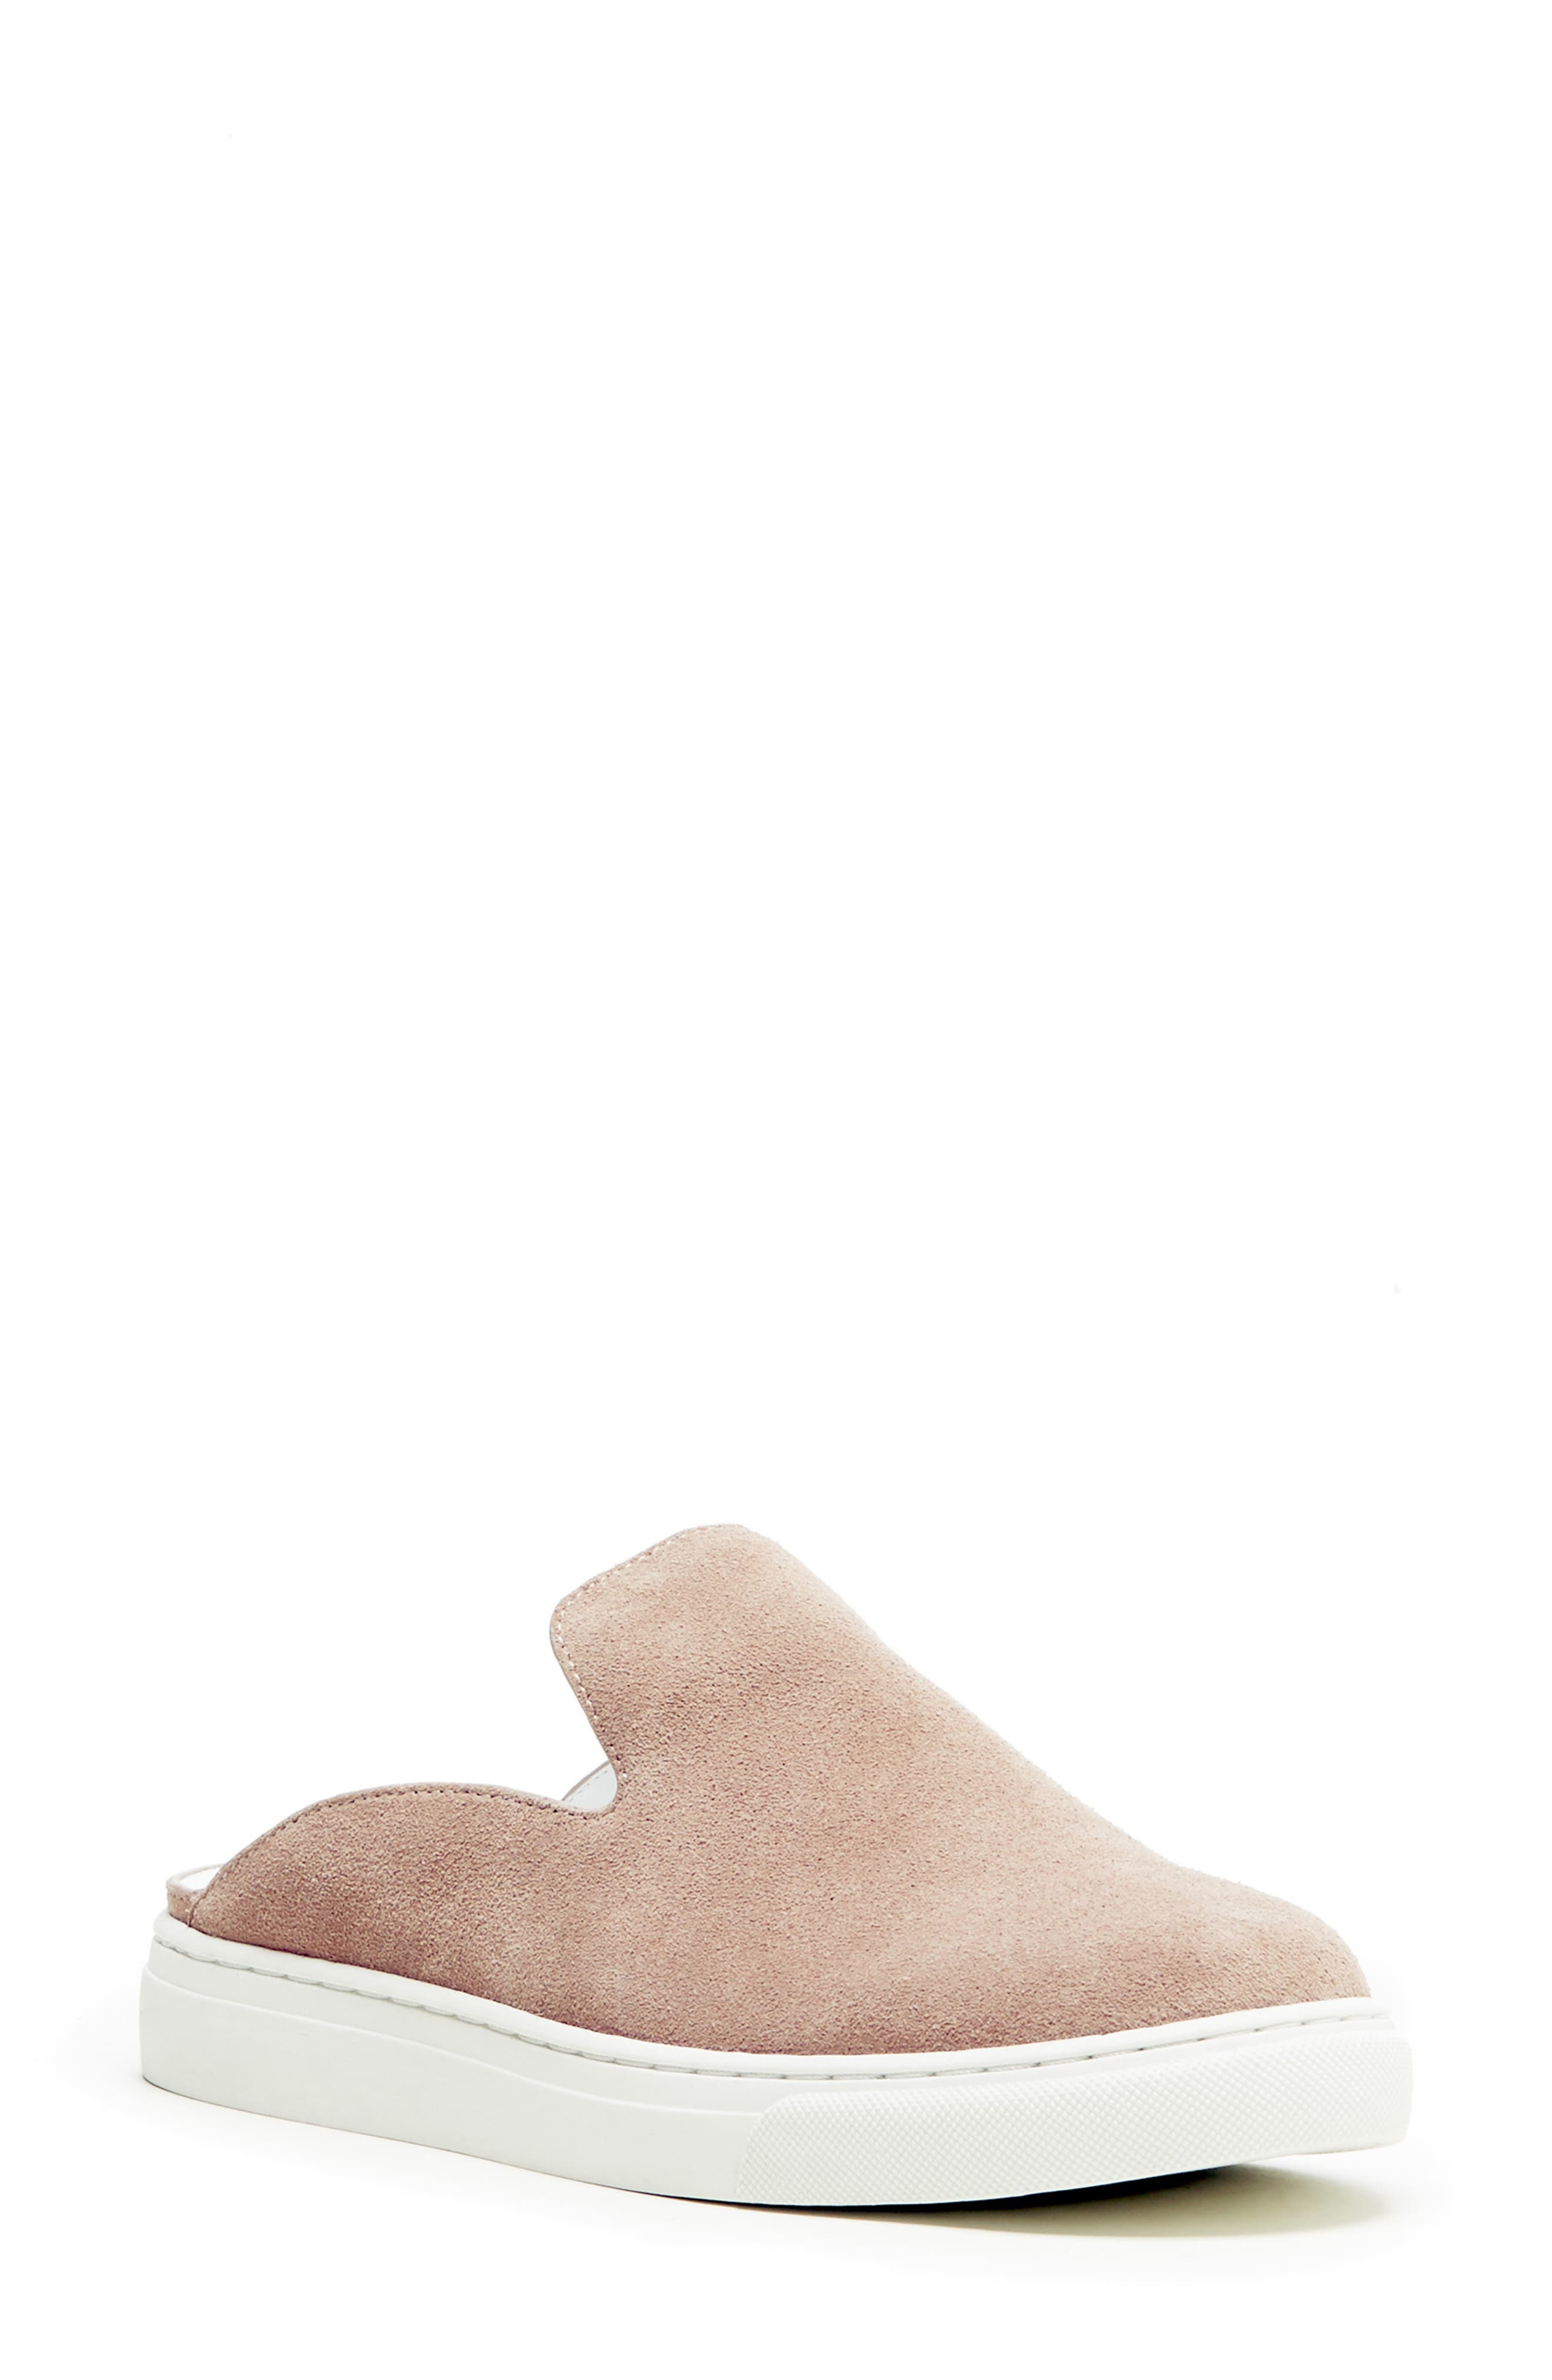 SOLE SOCIETY, Belynda Slide Sneaker, Main thumbnail 1, color, DUSTY ROSE SUEDE